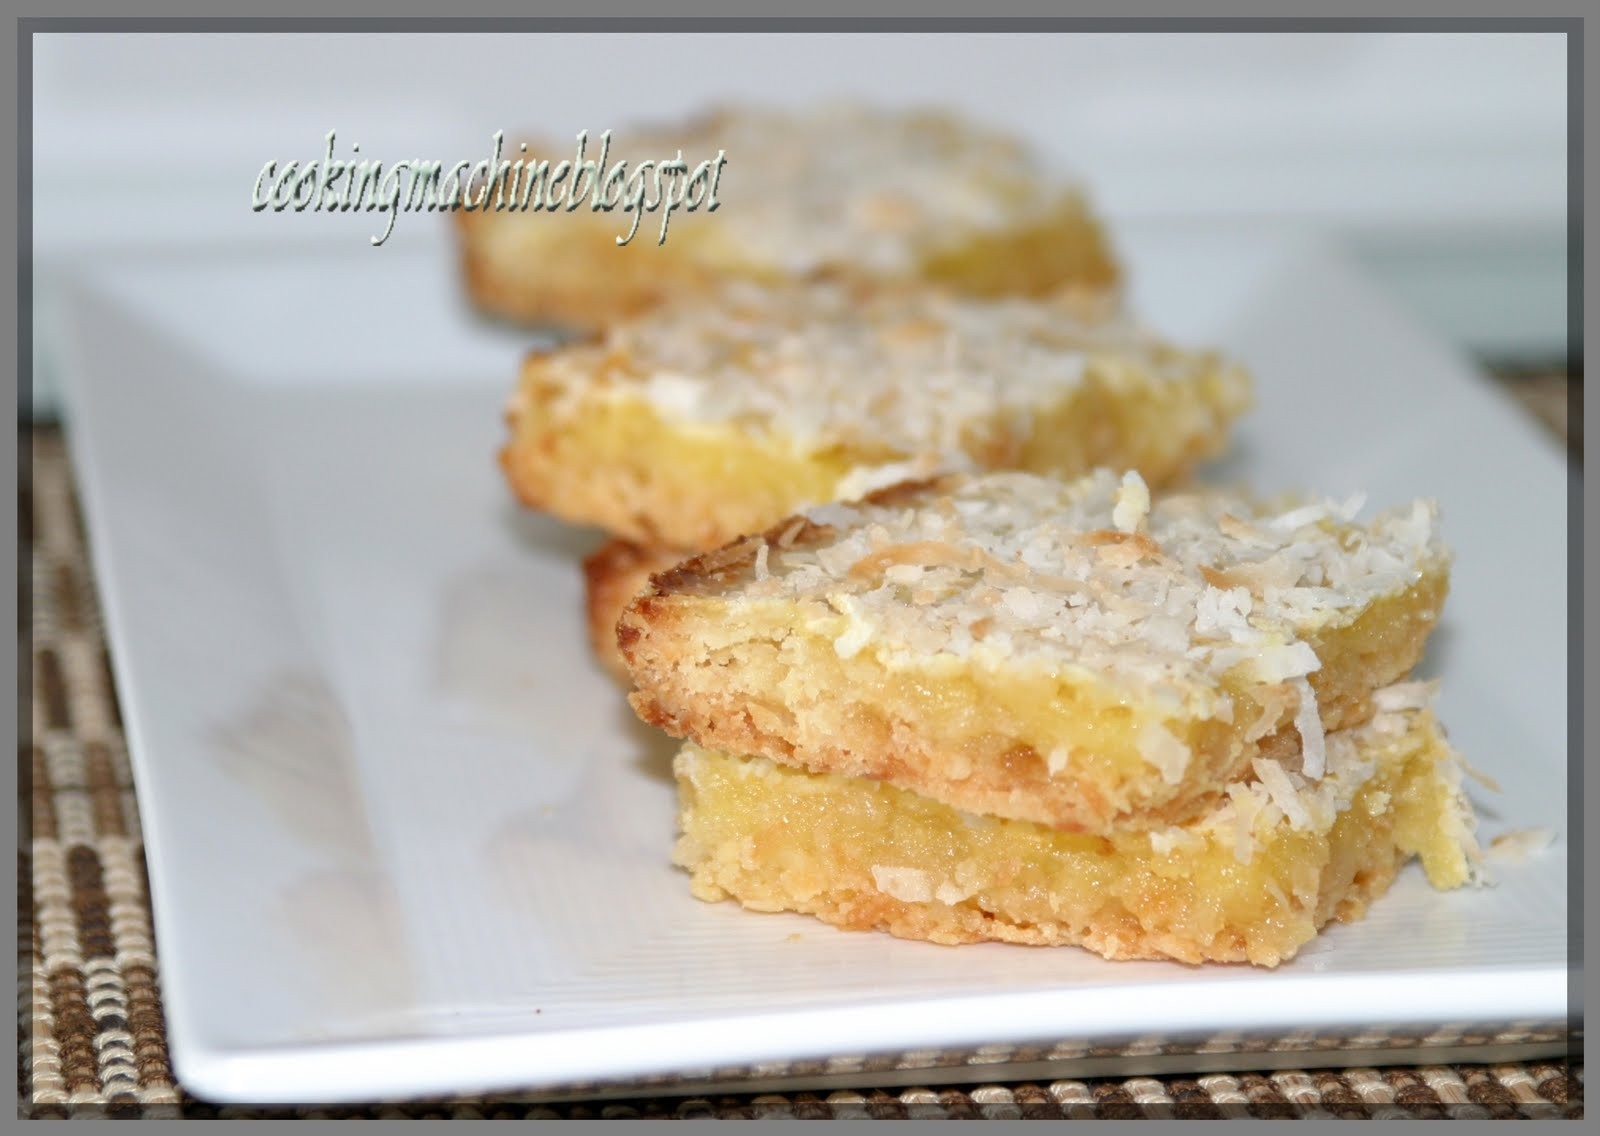 Asian Cooking and More...: Lemon-Coconut Bars